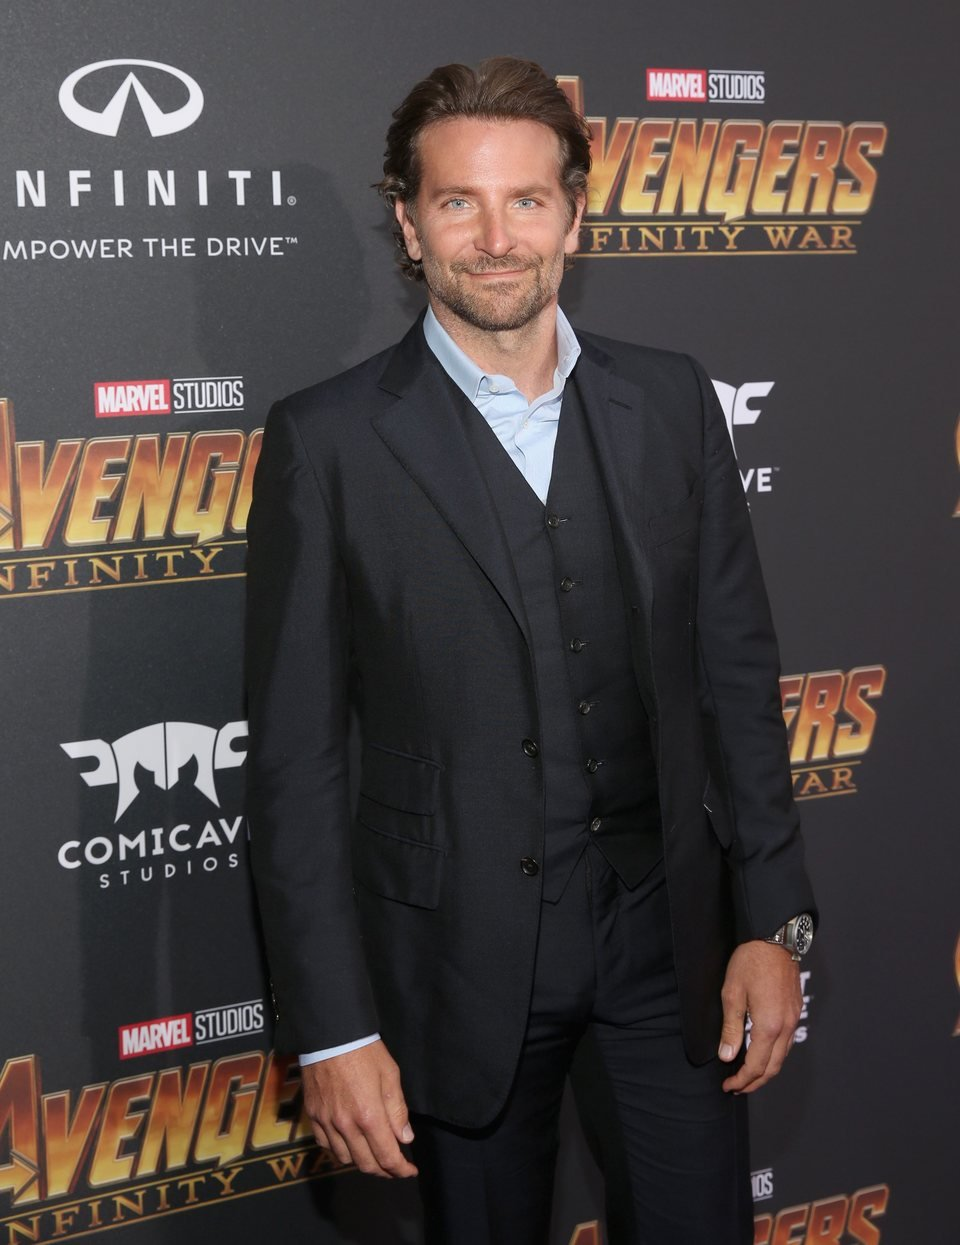 Bradley Cooper poses on the purple carpet at the world premiere for 'Avengers: Infinity War'